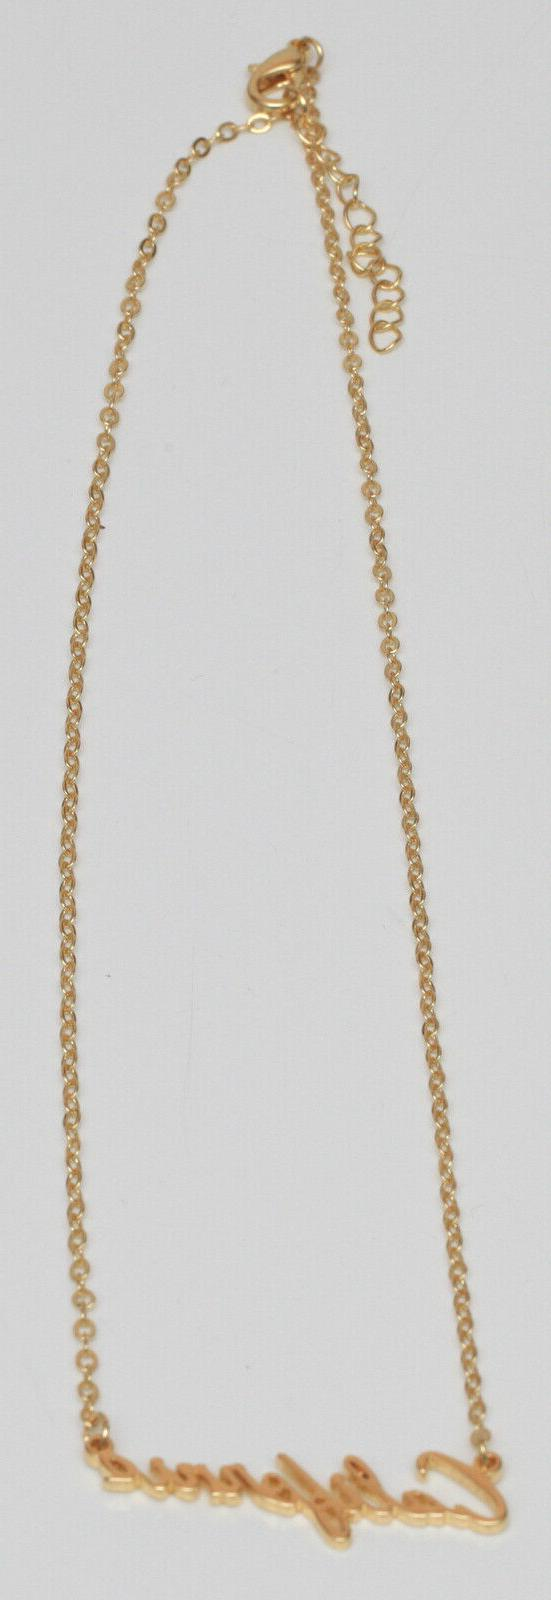 """New Pendant Plate Toned Chain 18"""" Cali Style"""